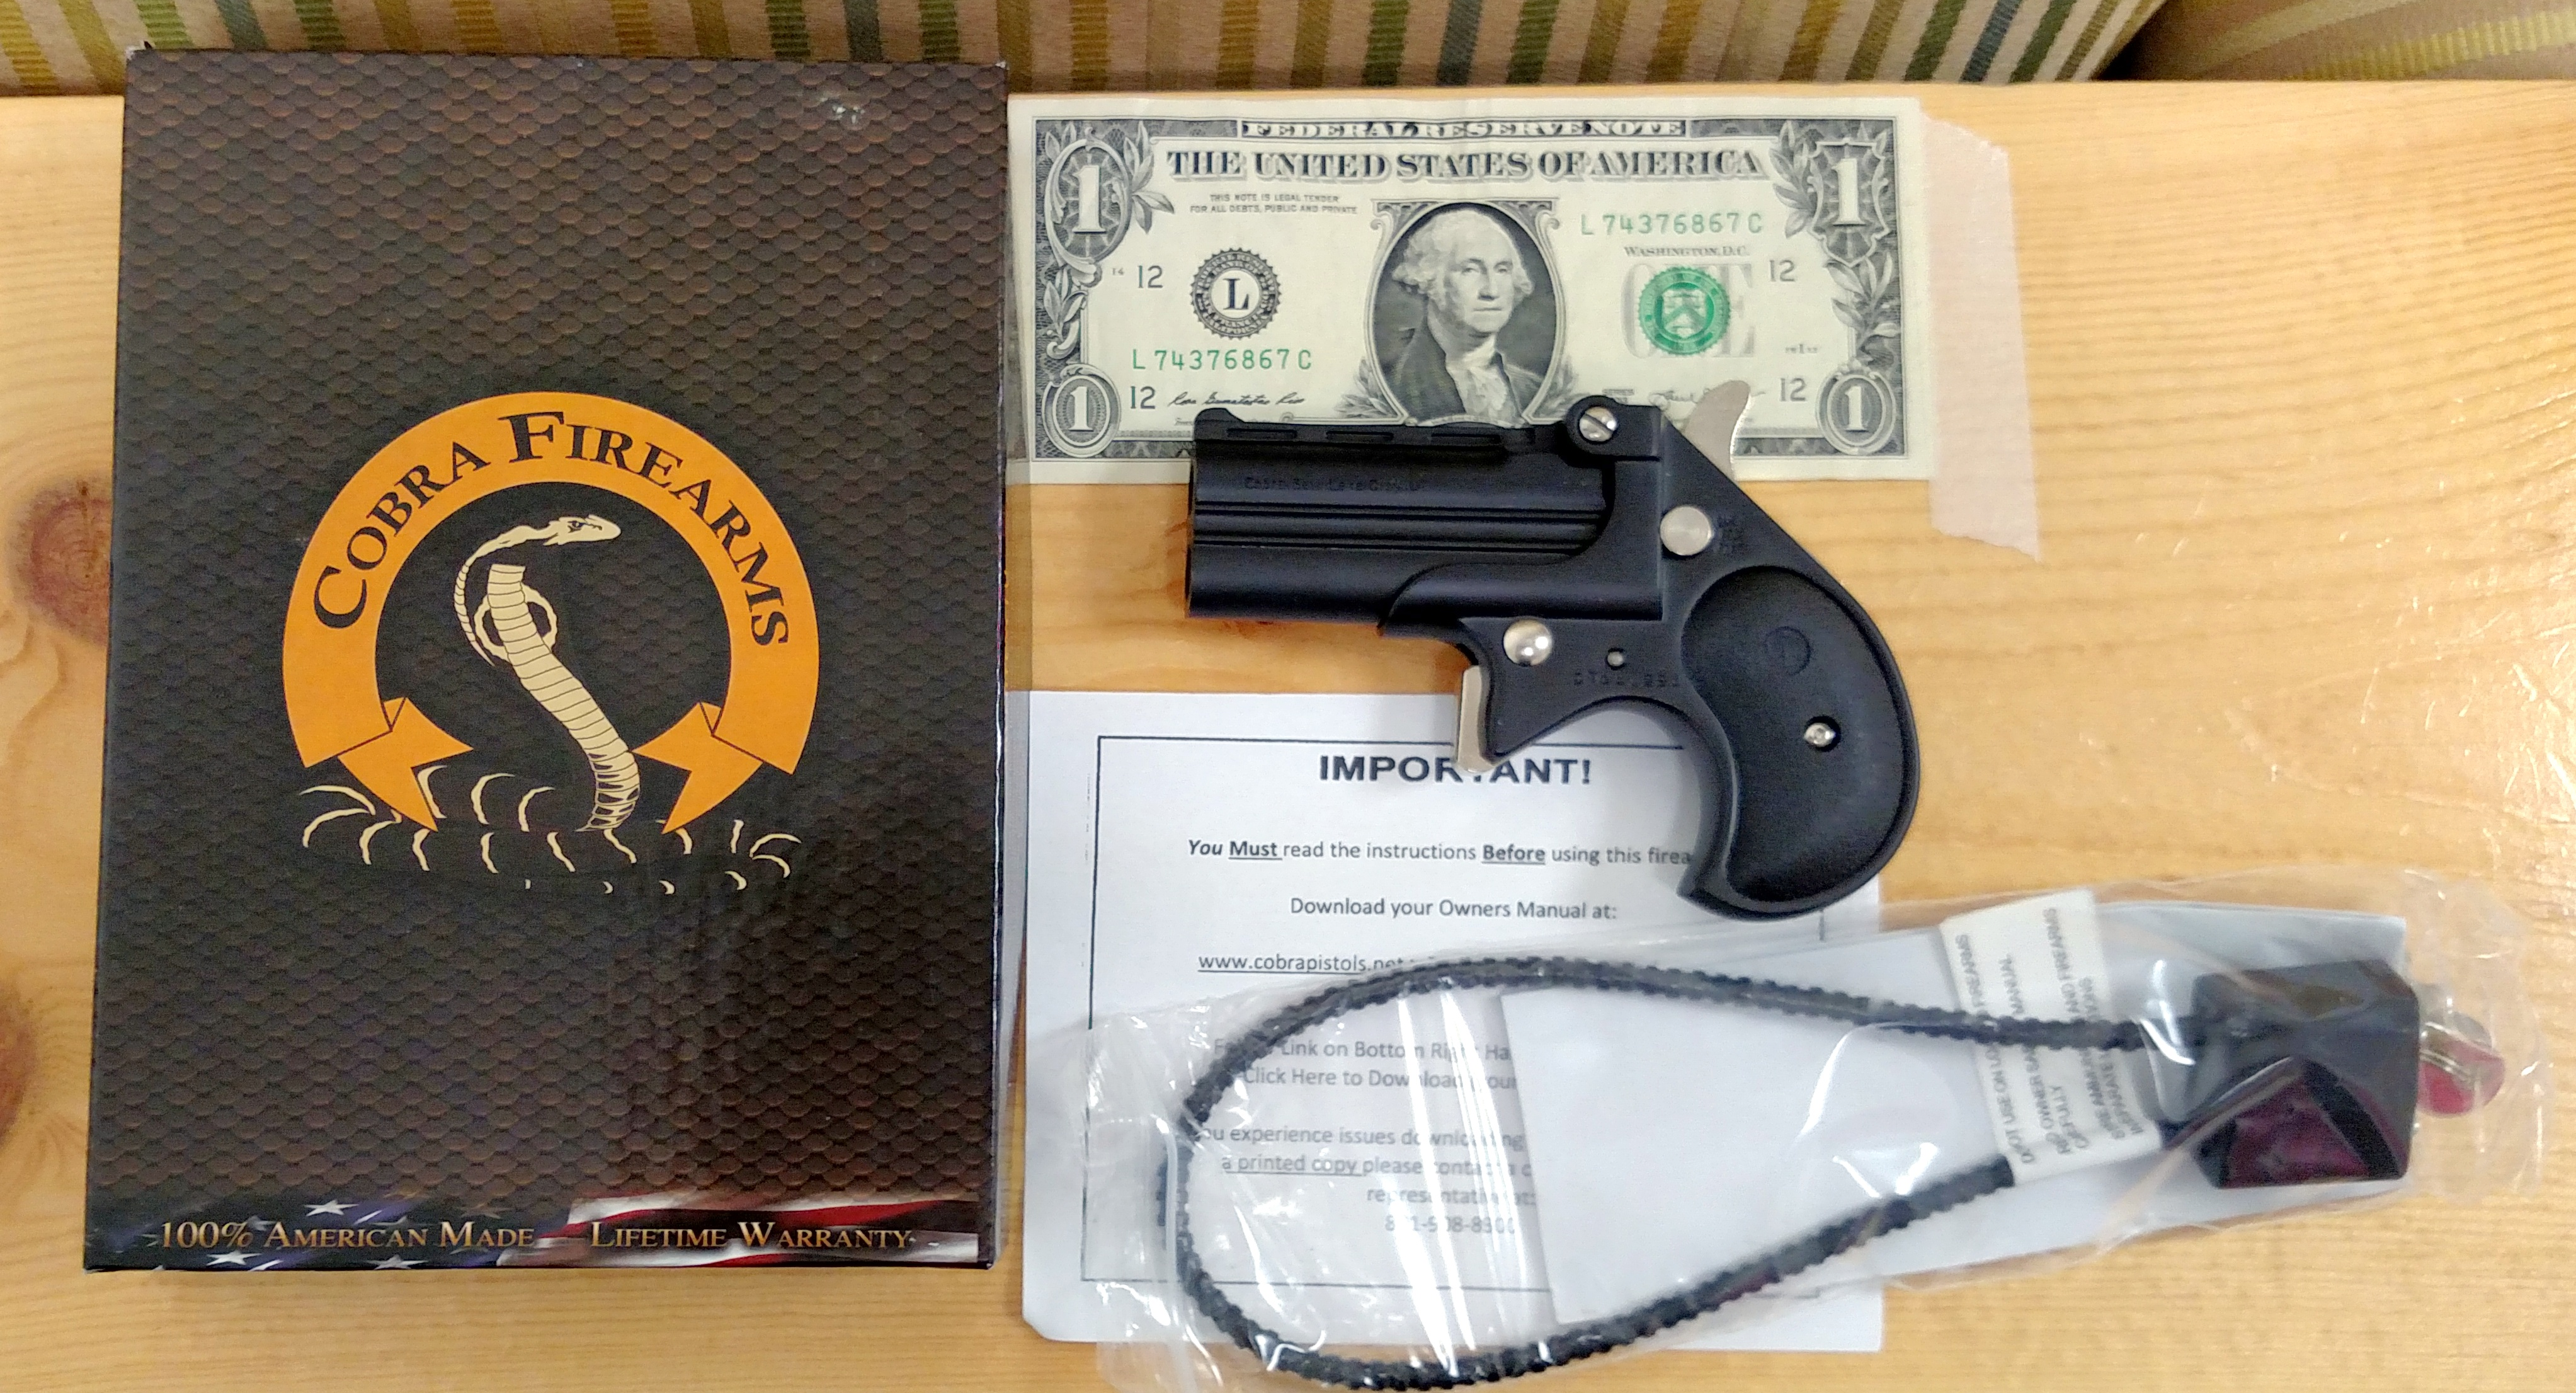 brand spanking new cobra all black 9mm cobra double barrel derringer rh egunner com Cobra Derringer 22 Magnum Holster Cobra Derringer Pearl Grips